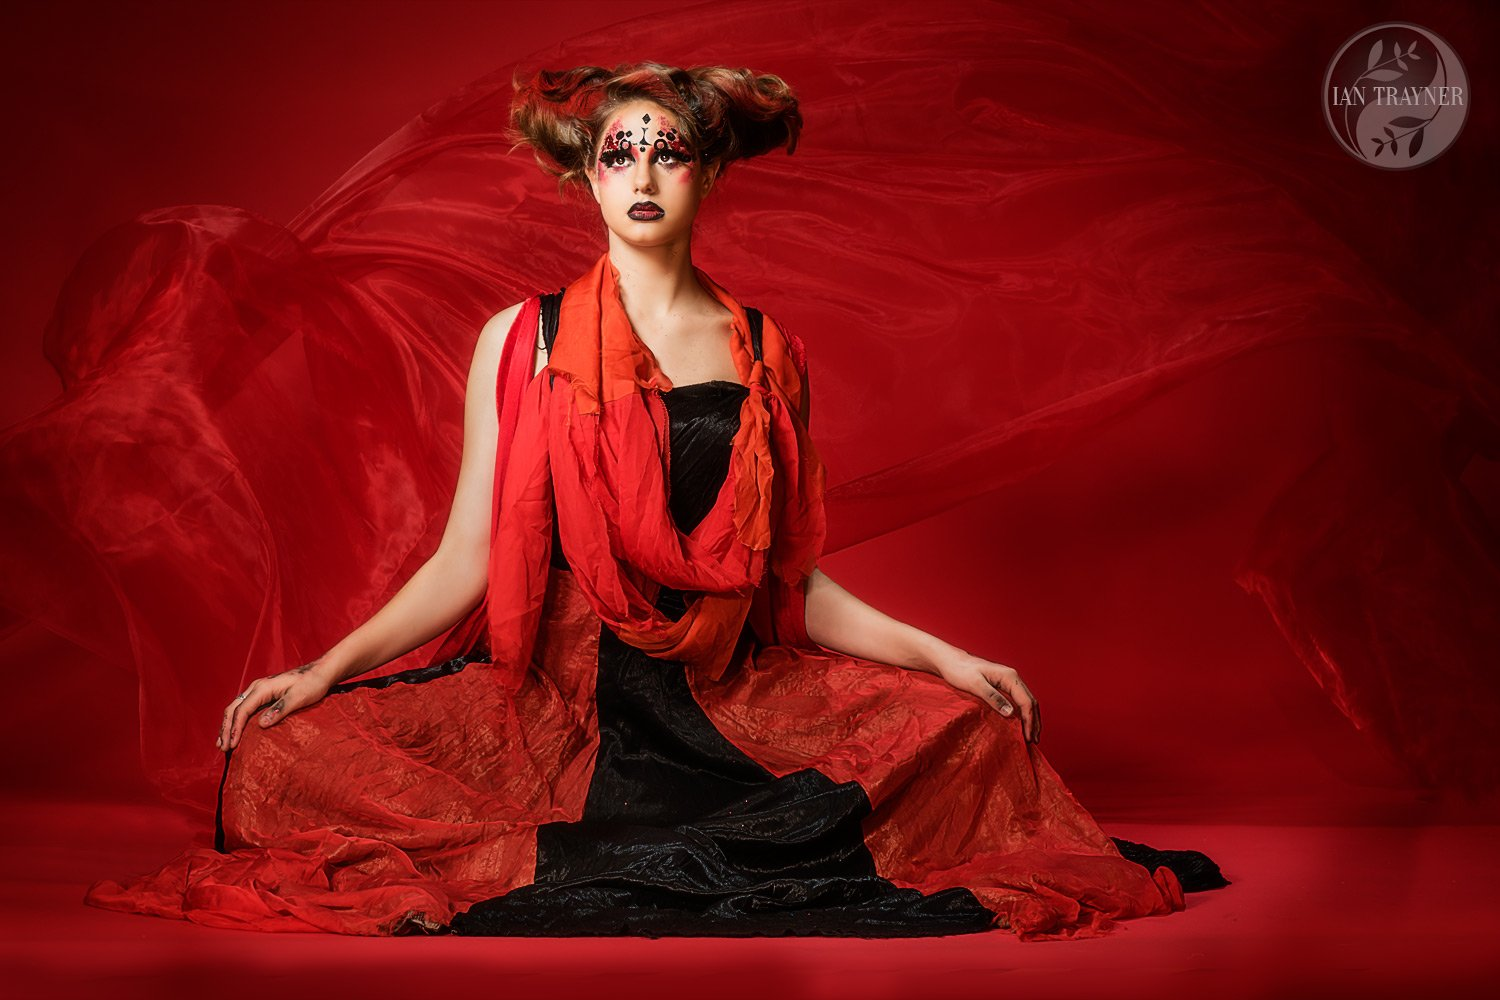 """Red on red"" Creative fashion photo shoot by Ian Trayner. Model is Cerys Wrigley Moss. Designer is Lind Blissett. Studio photo shoot in Kingston."